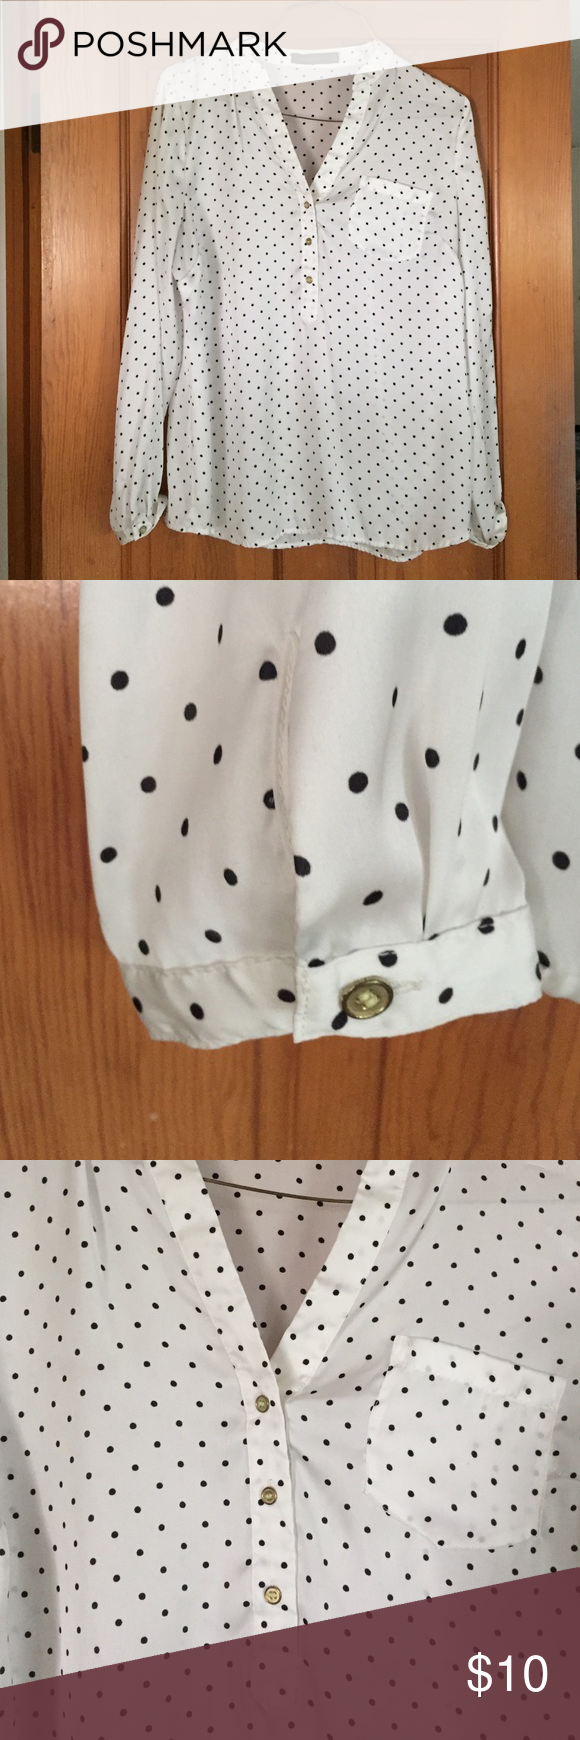 White and black polka dot blouse Long sleeved blouse with black polka dot pattern and gold button embellishments on front and sleeves. 100% polyester. The Limited Tops Blouses